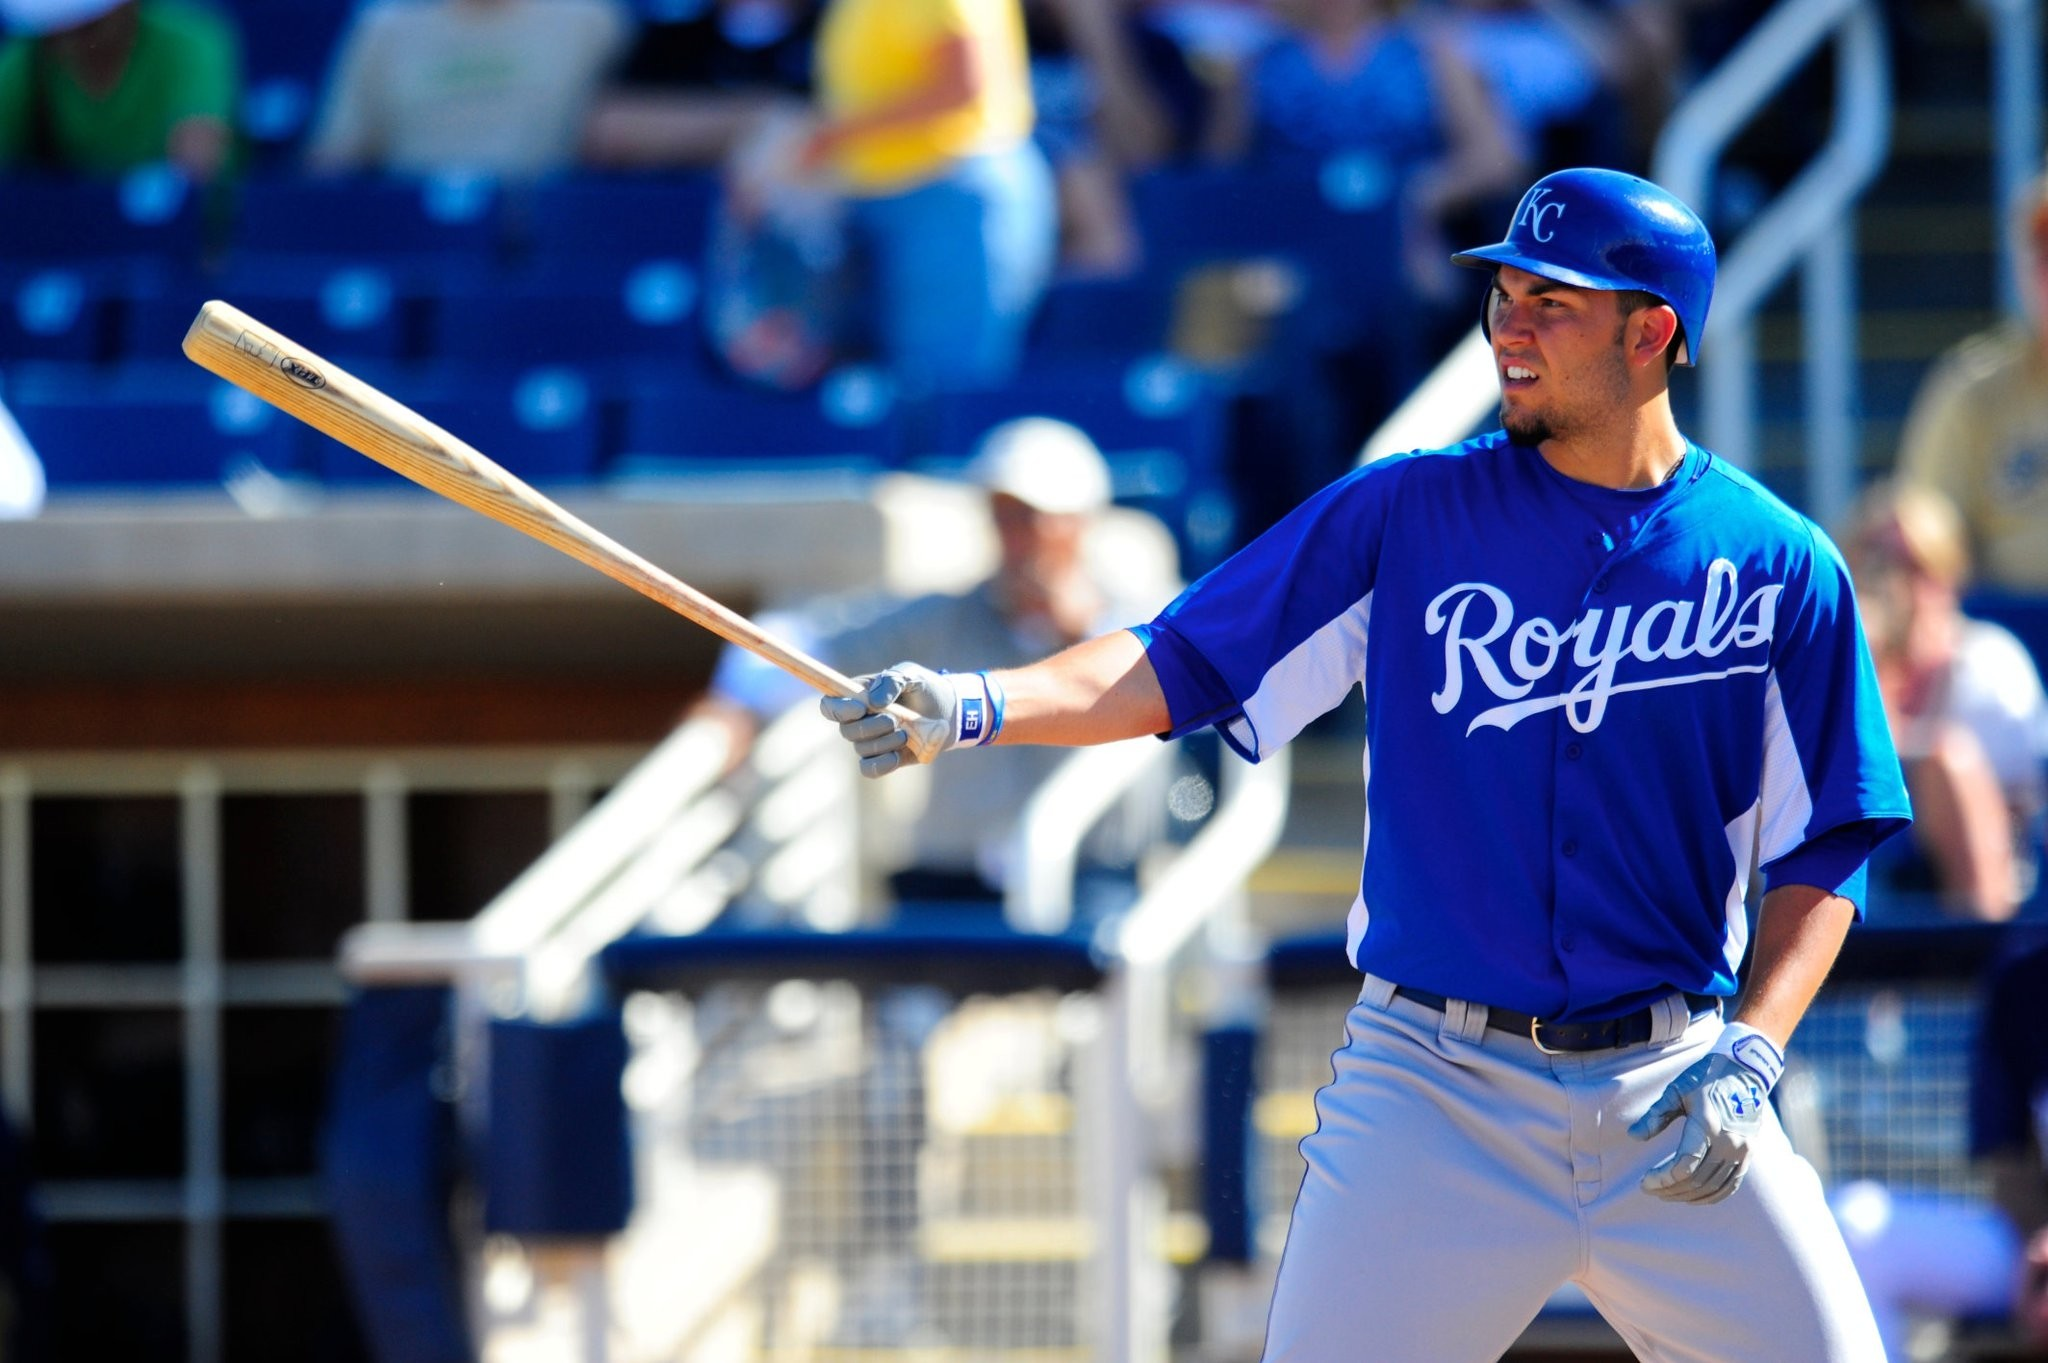 2048x1363 kc royals wallpaper 2014 - photo #5. Watch32 Watch Movies Online Free in HD  at Watch32comm